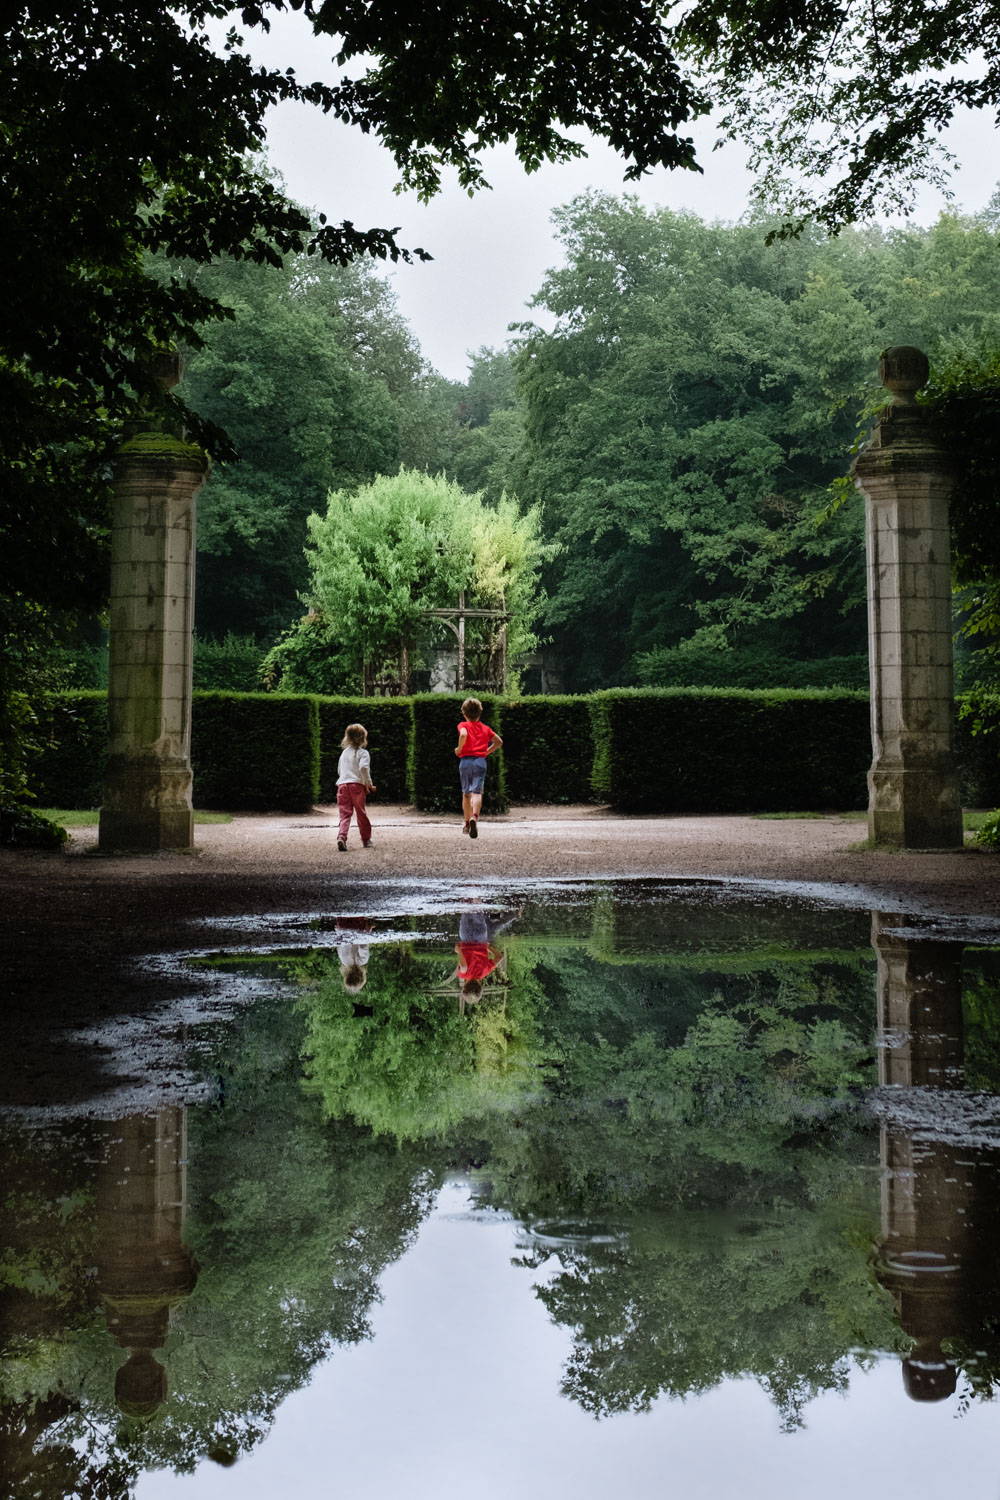 """Kids playing in the gardens of Chenonceau - Travel photography and guide by © Natasha Lequepeys for """"And Then I Met Yoko"""". #loirevalley #france #travelguide #travelphotography #valdeloire"""